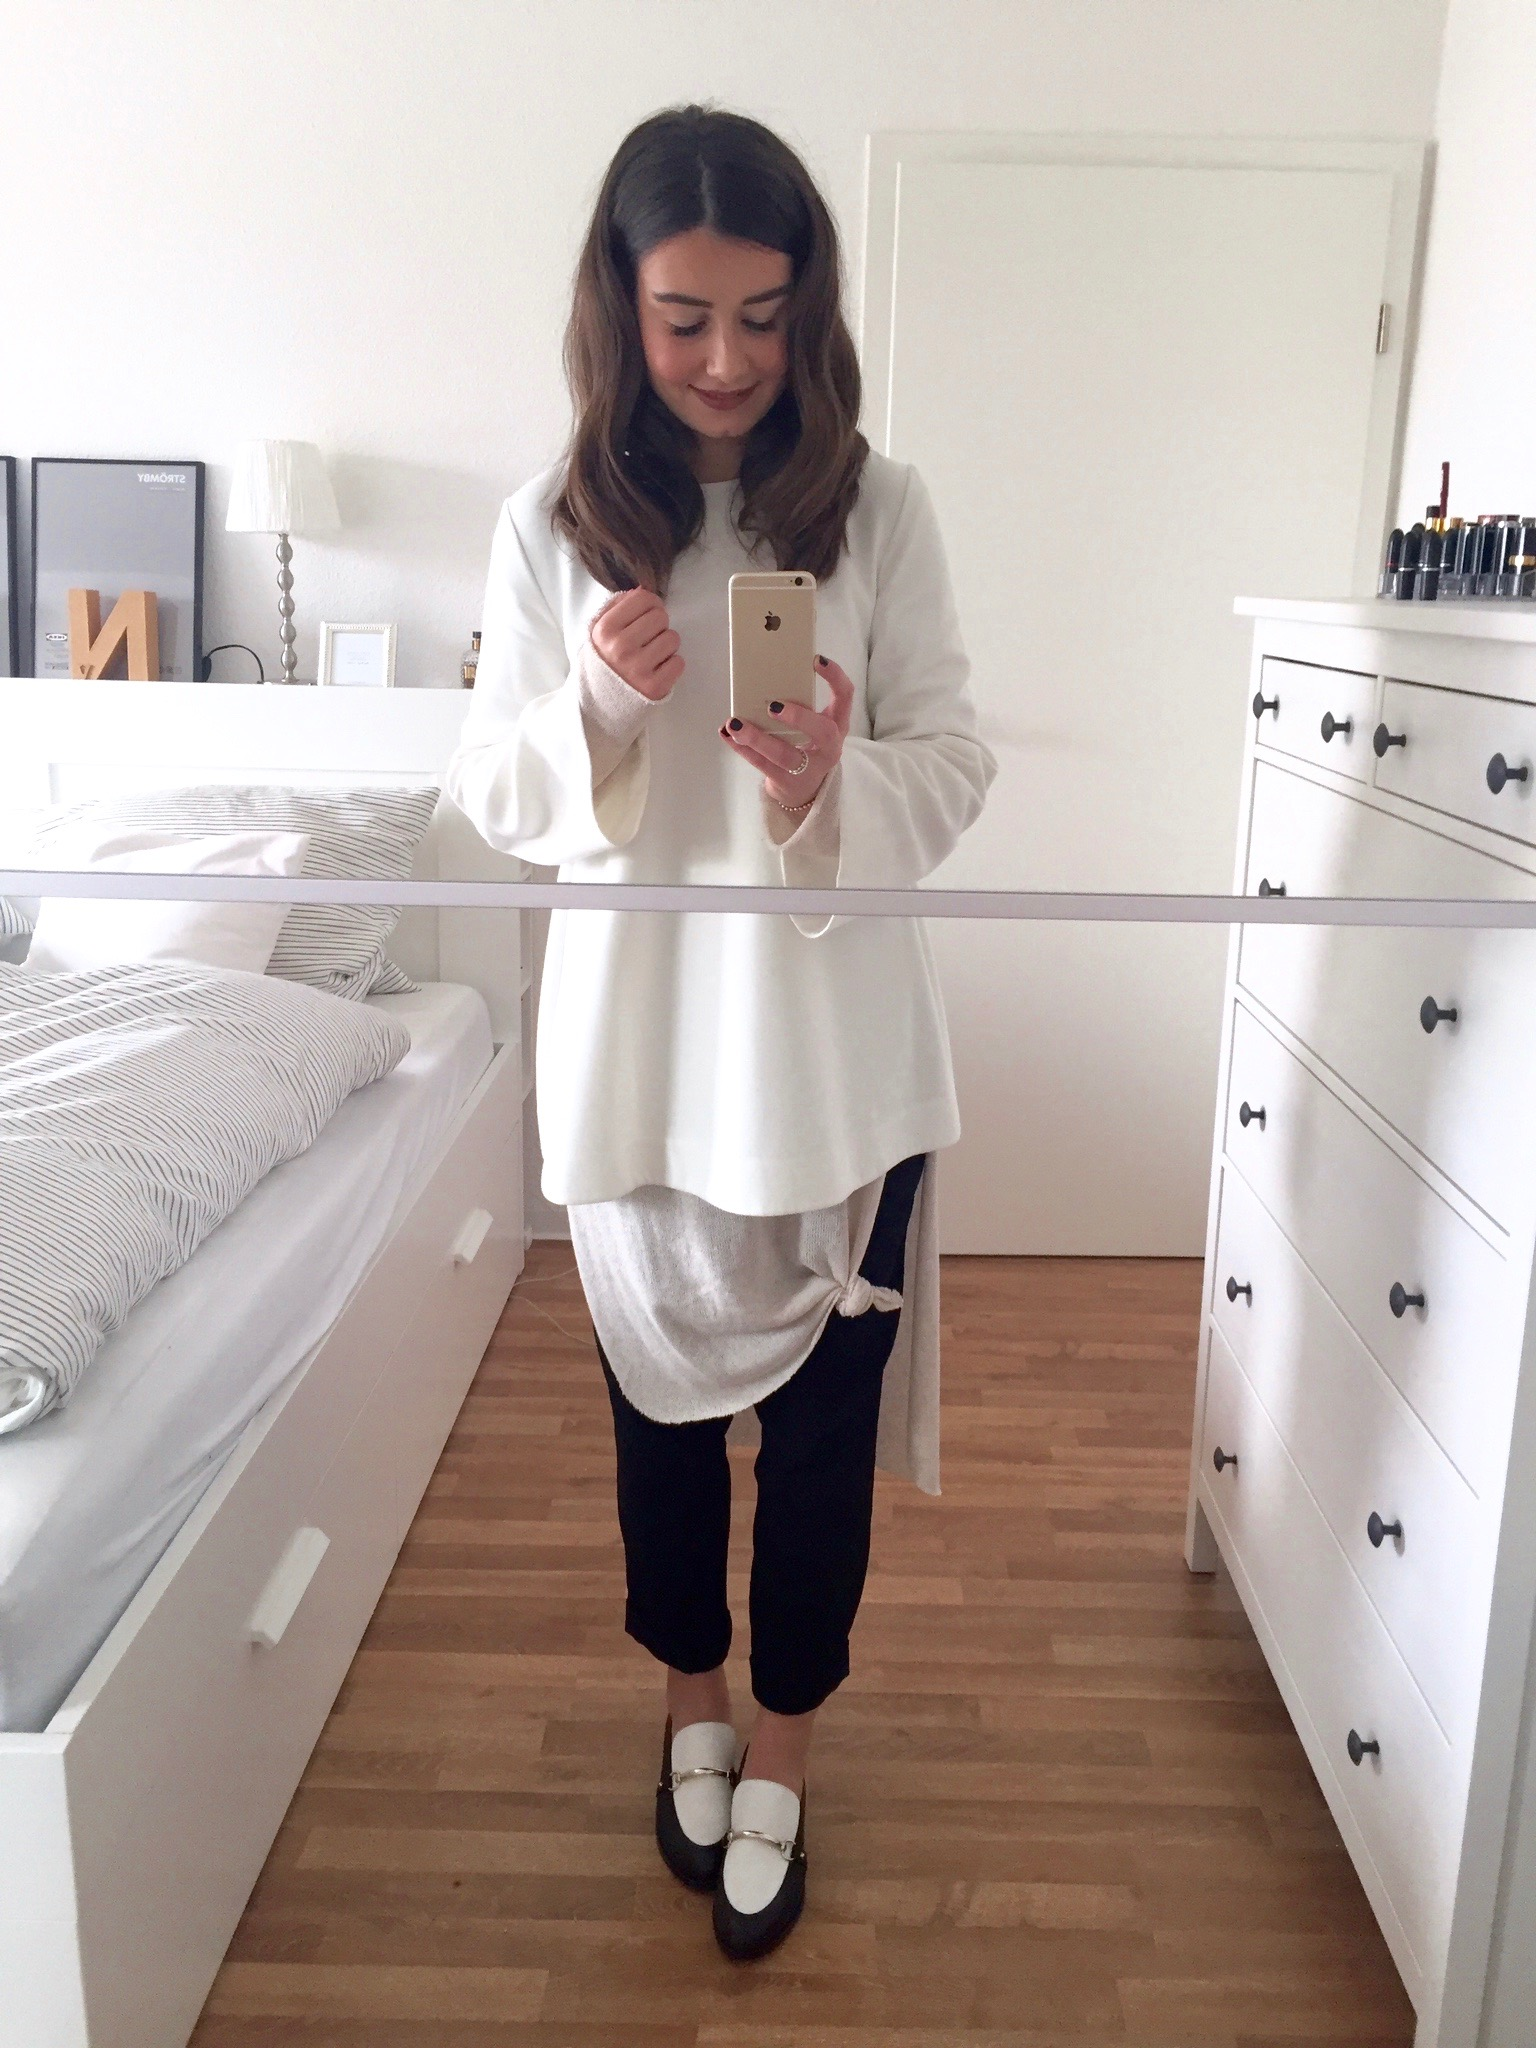 24th birthday, Geburtstag, home, party, outfit, andotherstories, layering